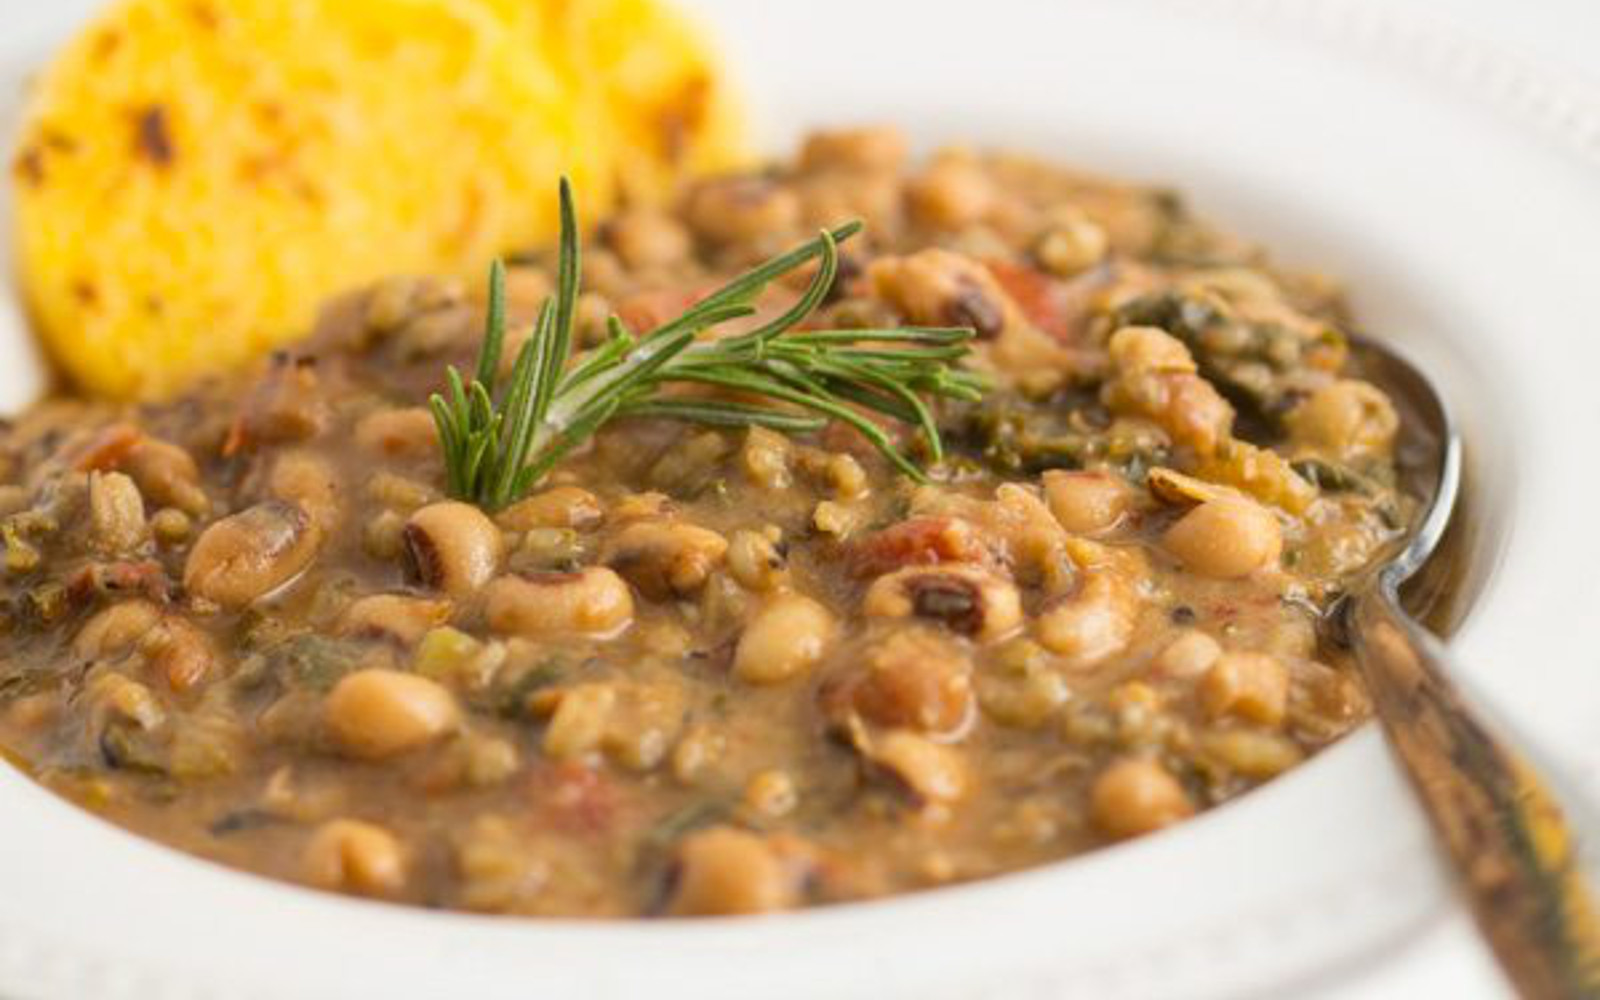 Vegan Gluten-Free Pressure Cooker Hoppin' John with garnish